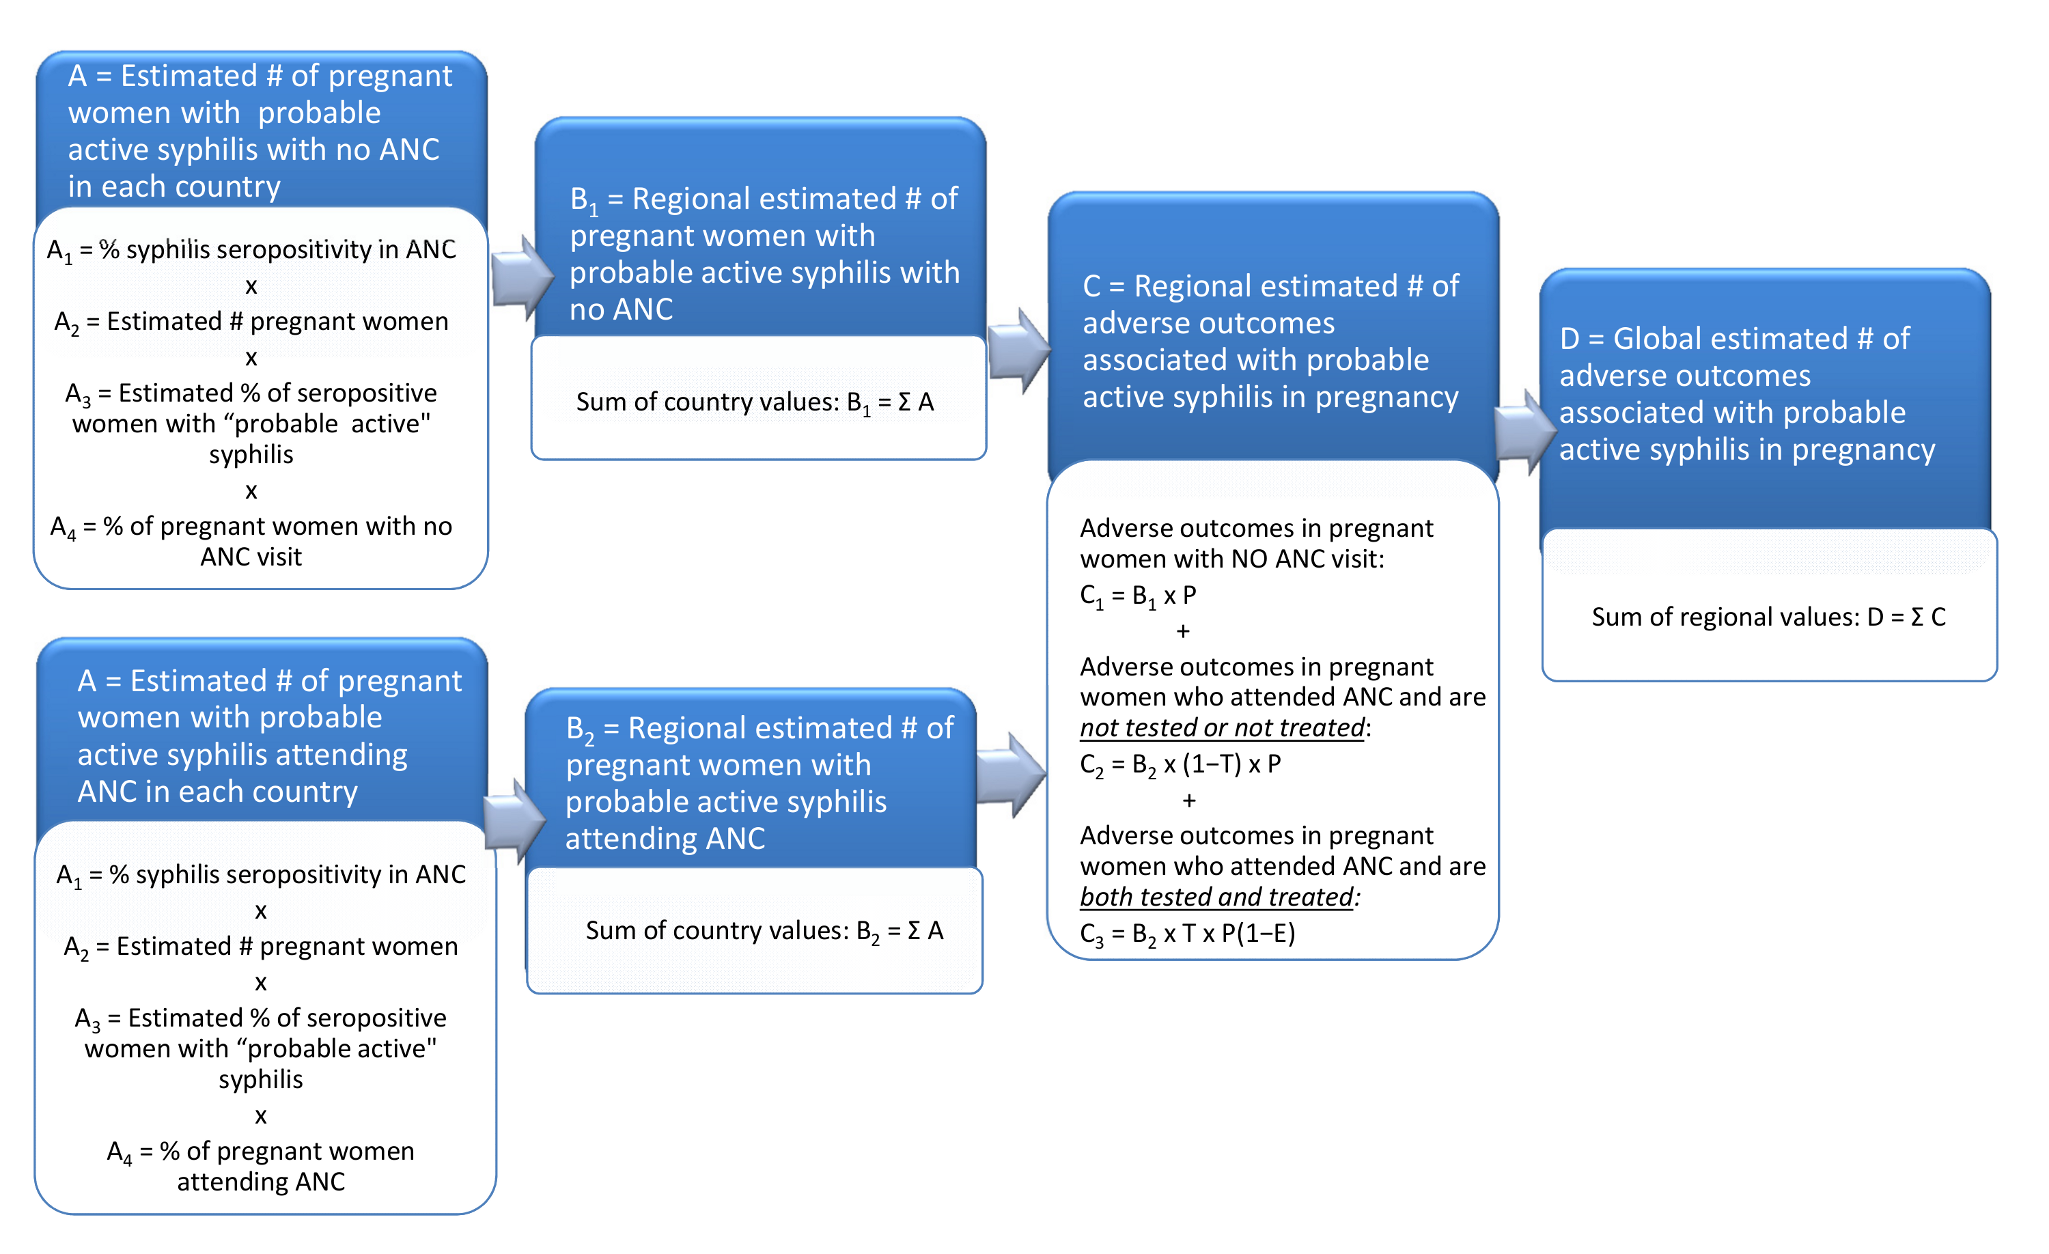 Flowchart of model to estimate number of adverse outcomes associated with syphilis in pregnancy.